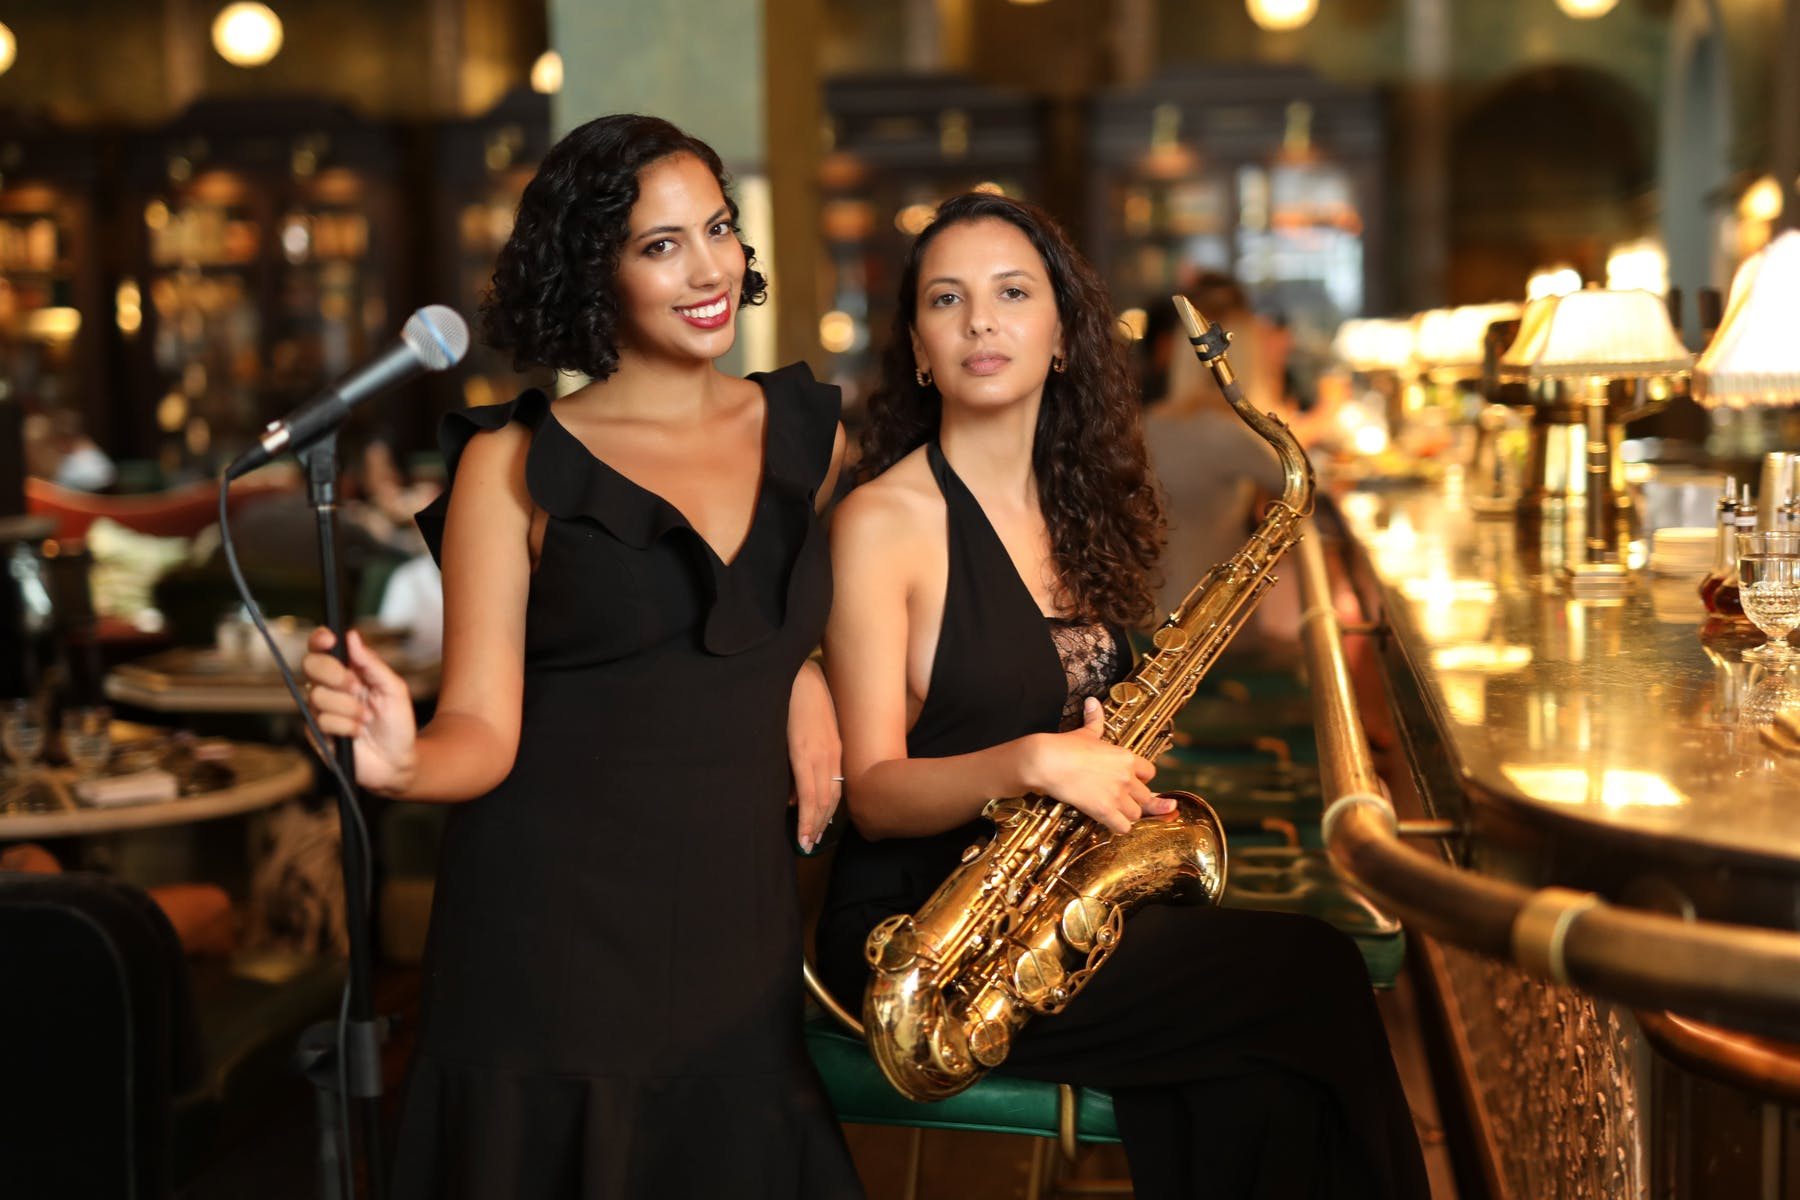 Two woman at the bar, one with a microphone, one with a Saxaphone